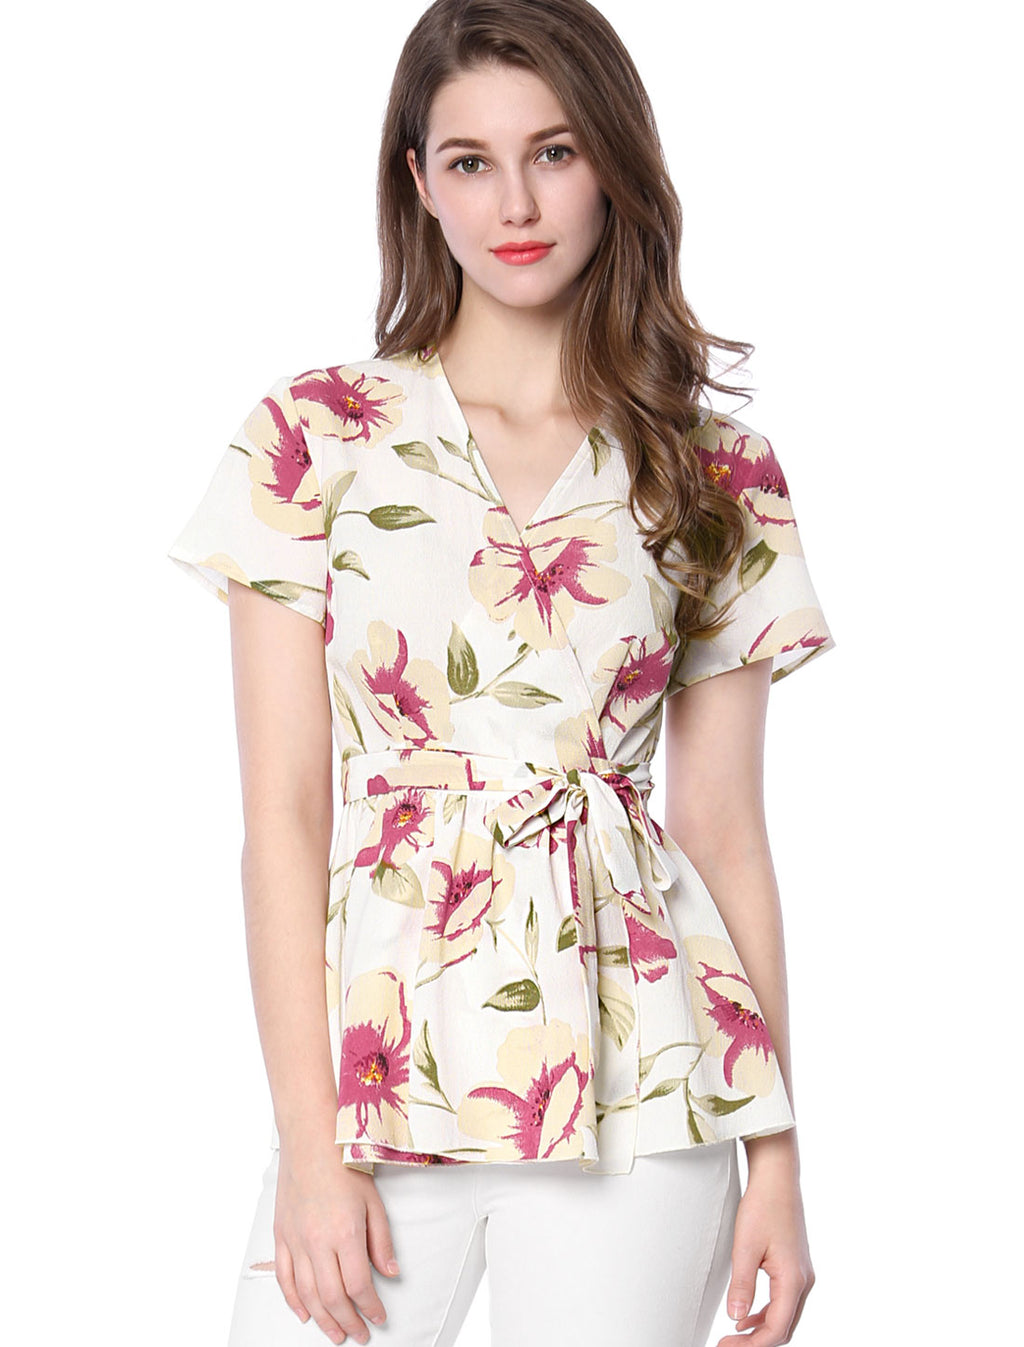 Women Crossover V-neck Floral Print Self-tie Waist Wrap Peplum Top White